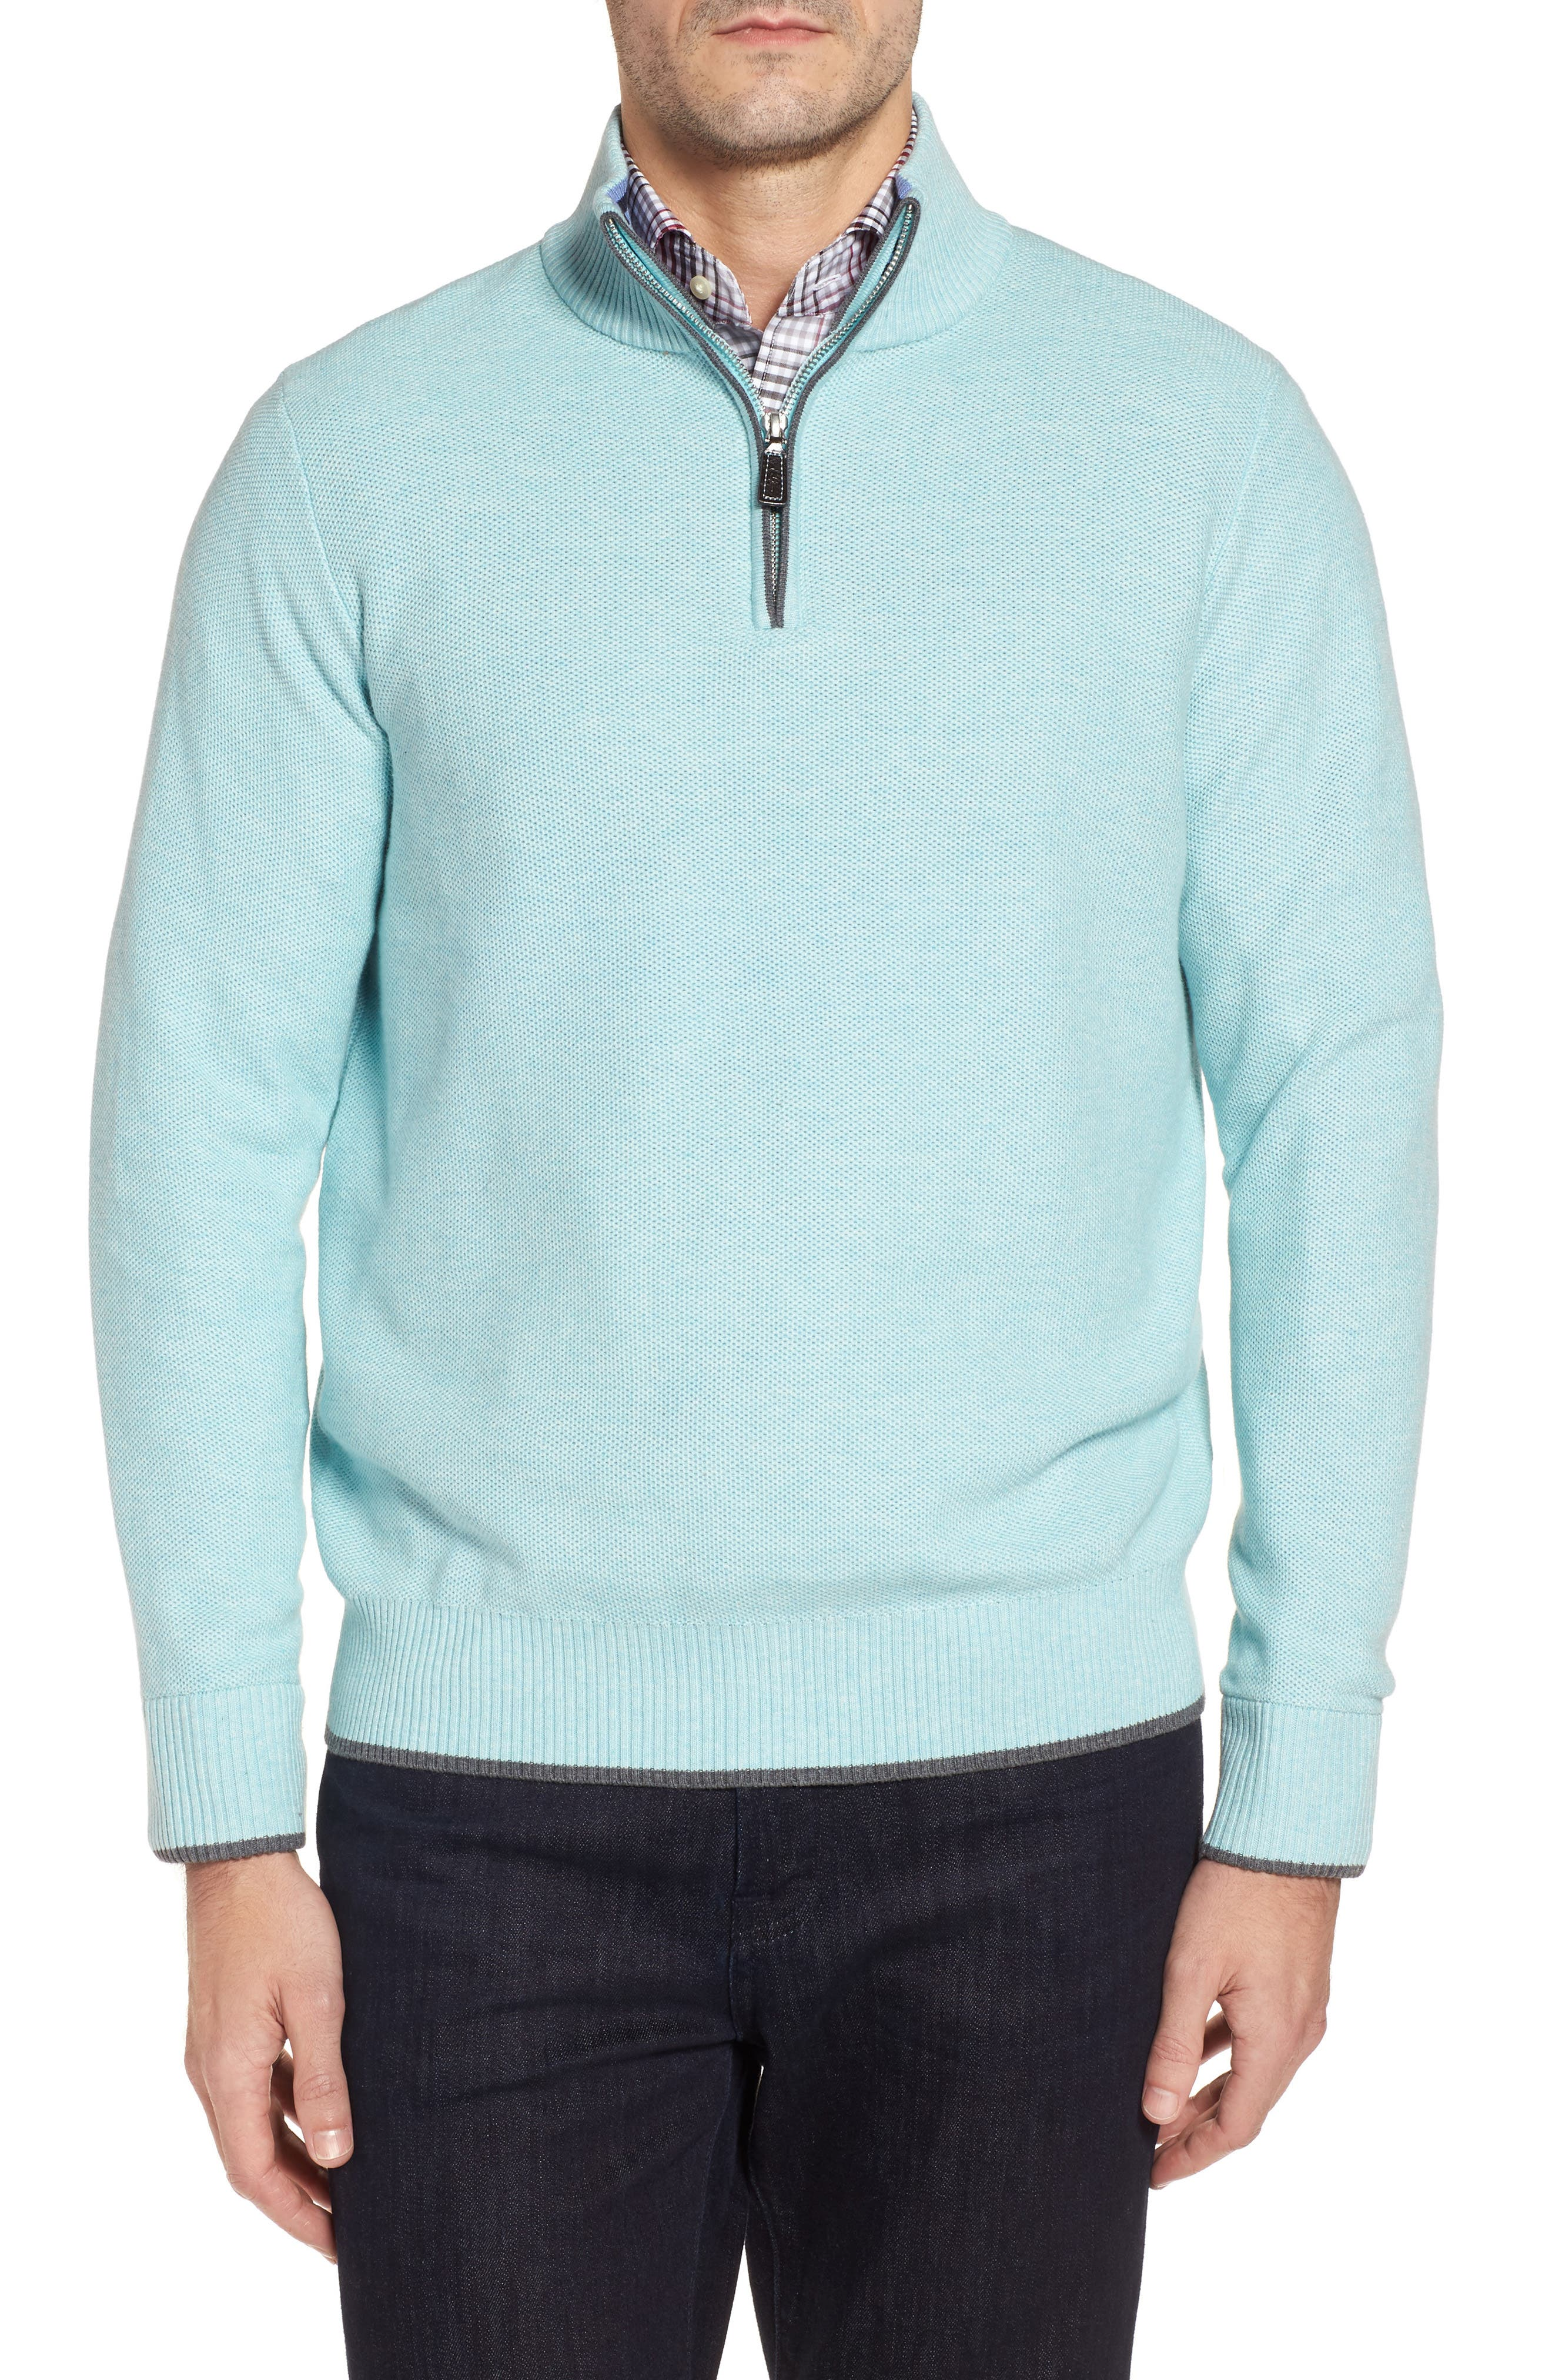 TailorByrd Starks Tipped Quarter Zip Sweater